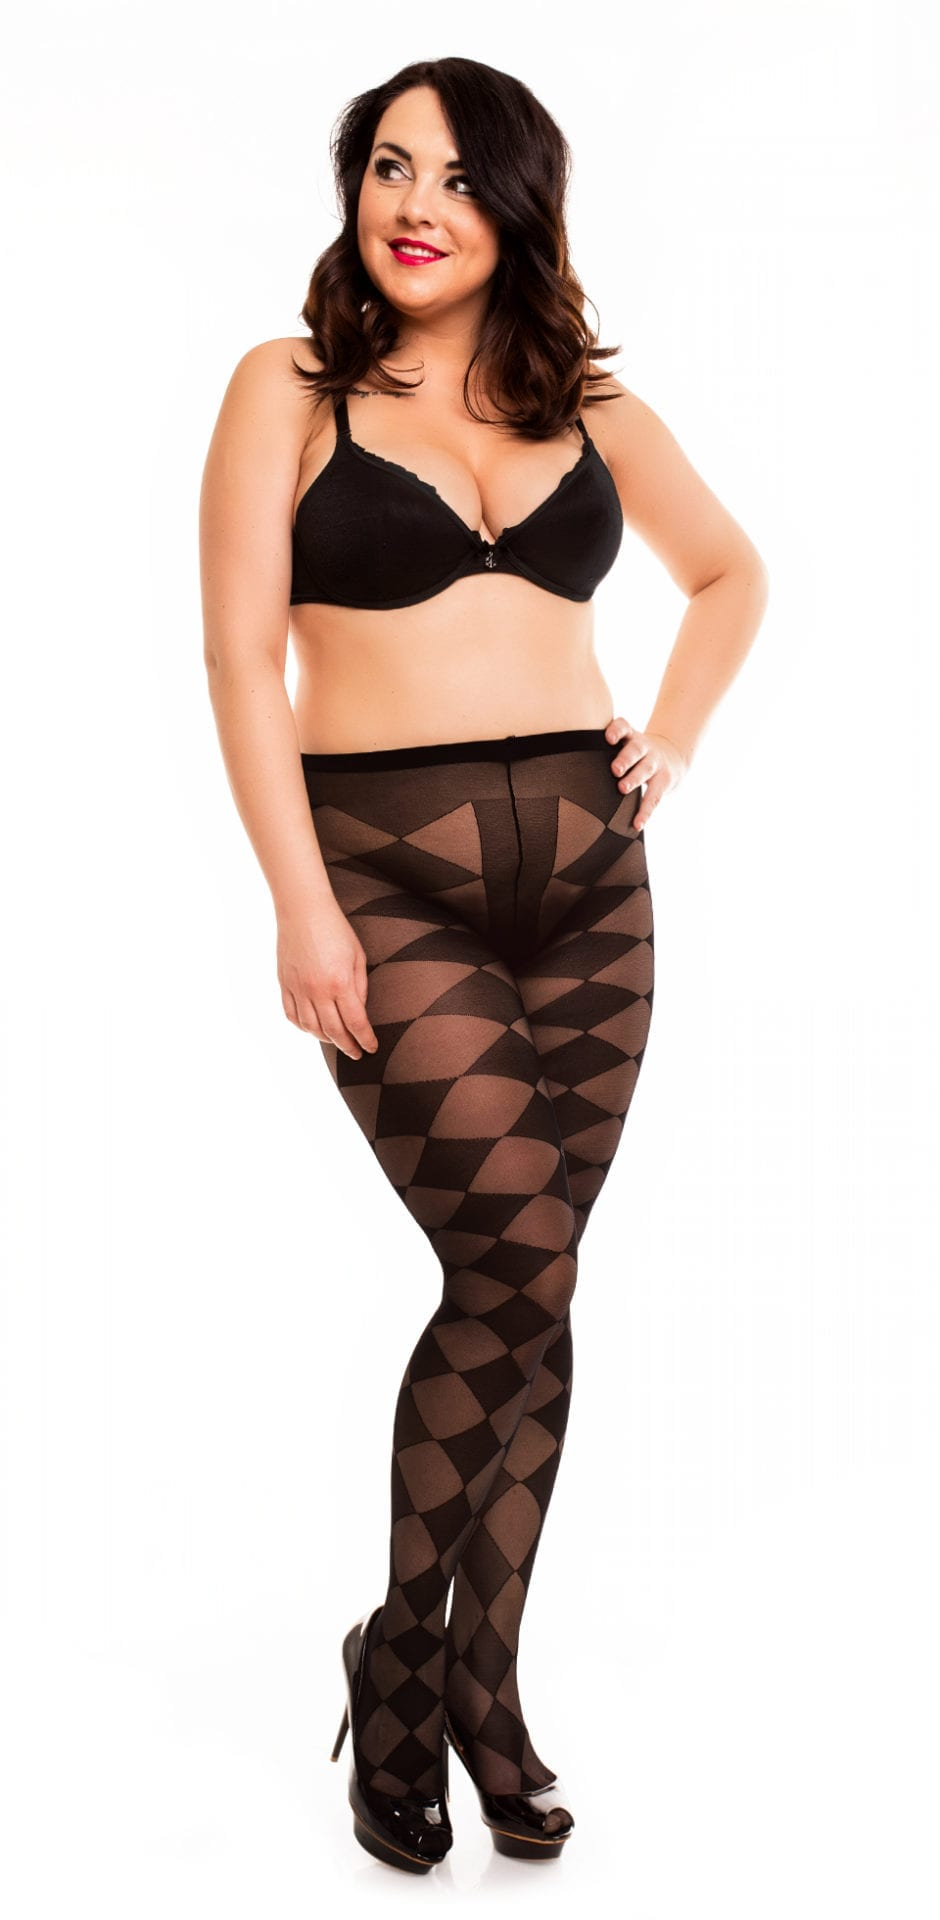 Glamory Diamond 20 Patterned Tights 20 denier black front view full body